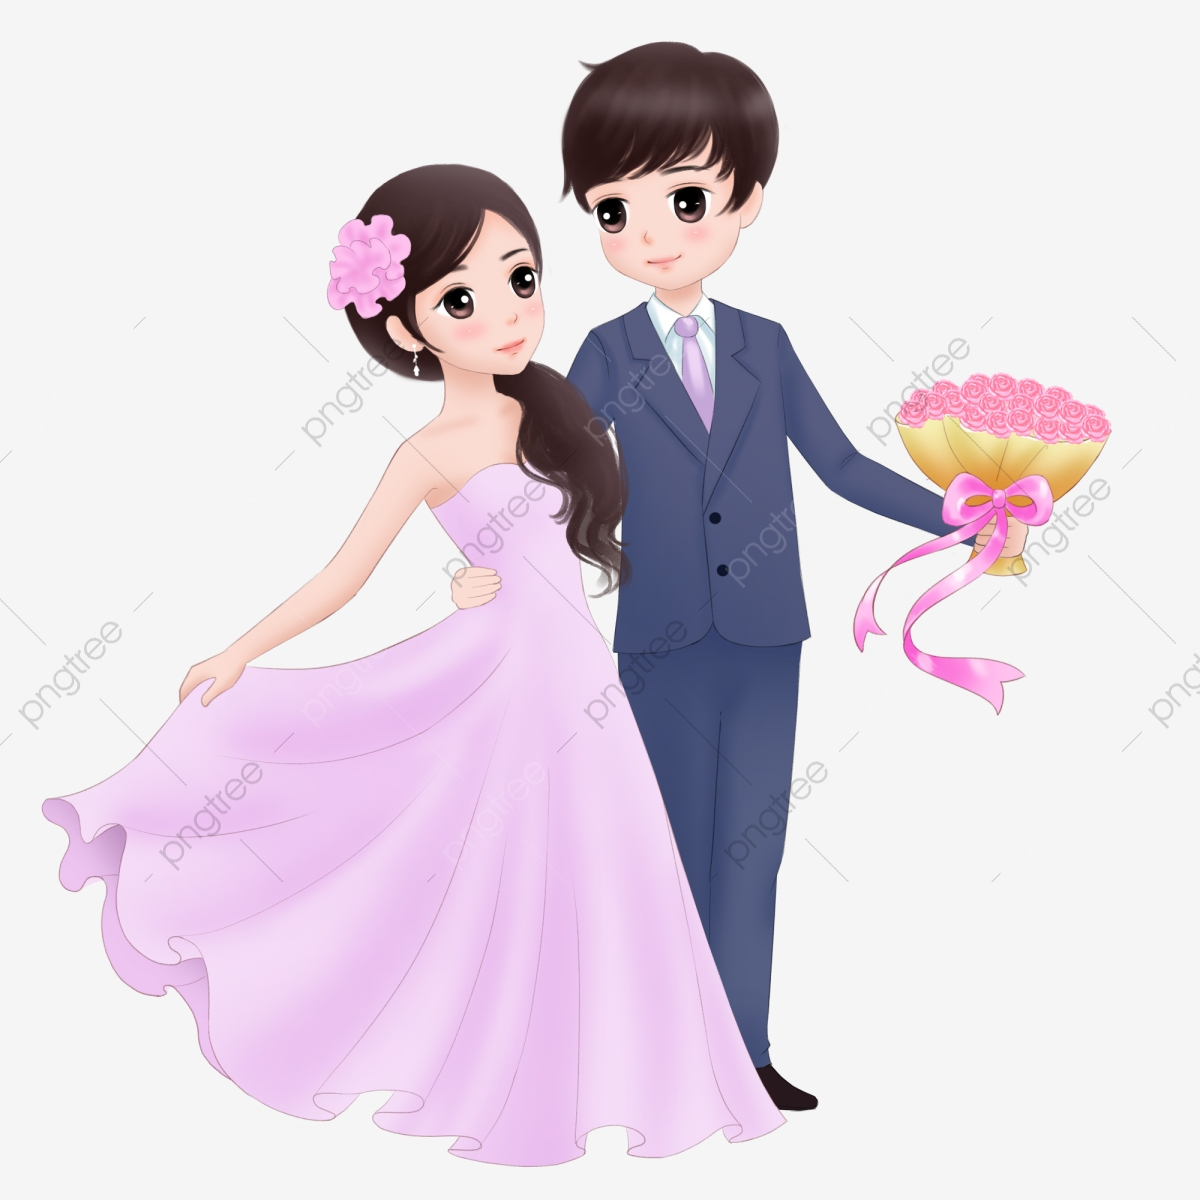 Valentine Couple Wedding Cartoon Couple Comics Couple Cartoon Cartoon Clipart Valentines Day Comics Wedding Comics Png Transparent Clipart Image And Psd File For Free Download